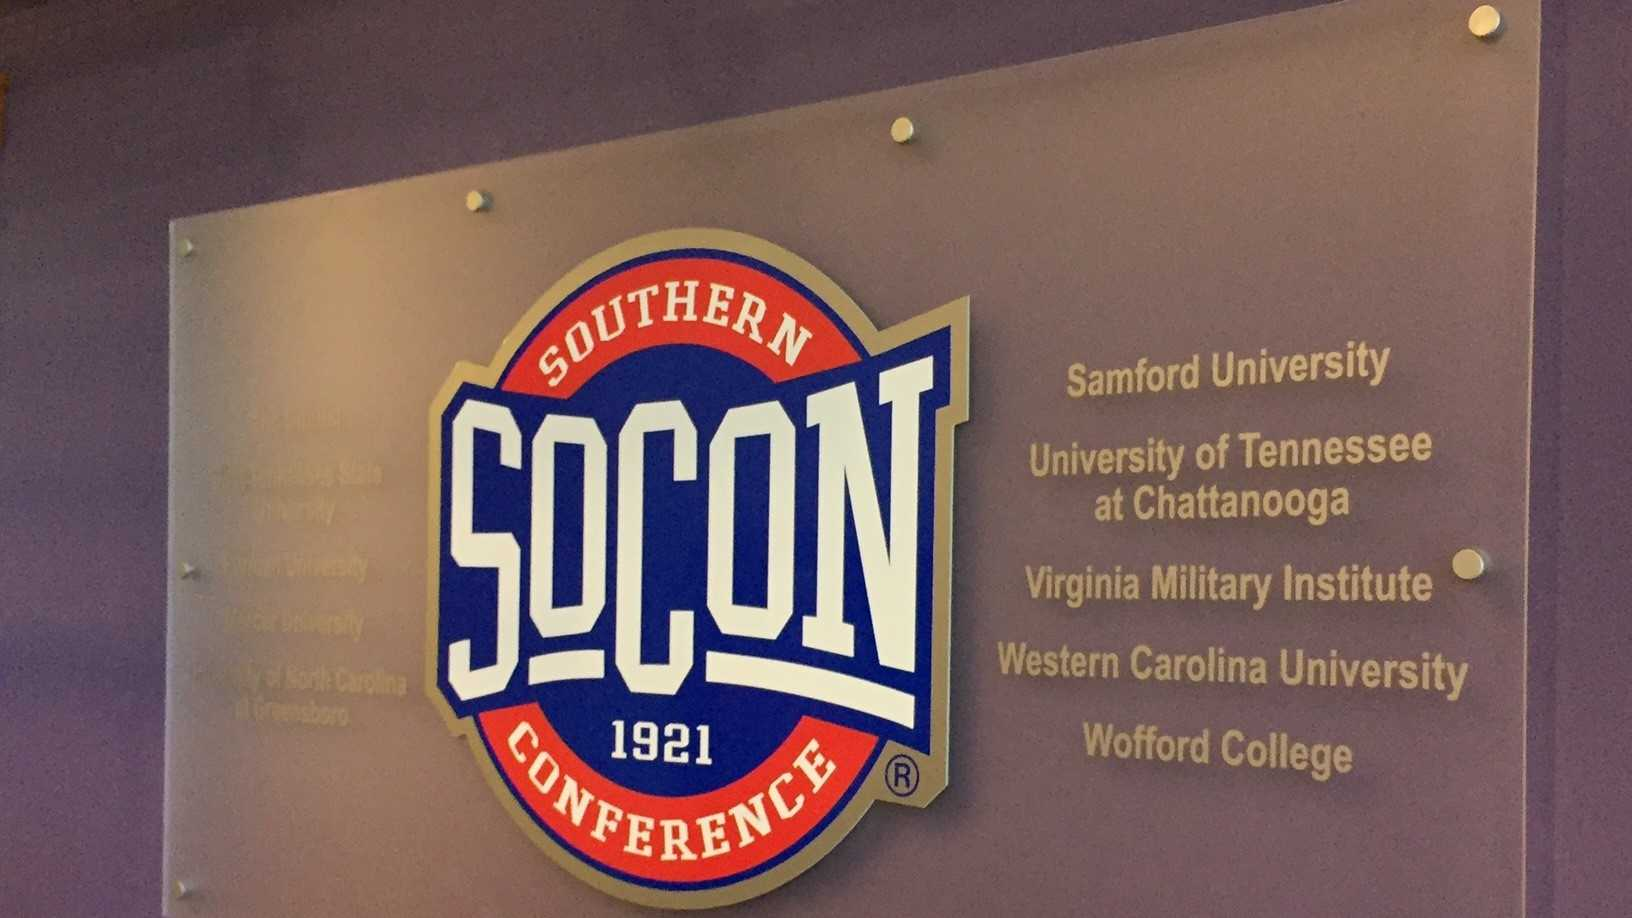 The Southern Conference will make a decision about its events in North Carolina sooner than expected.